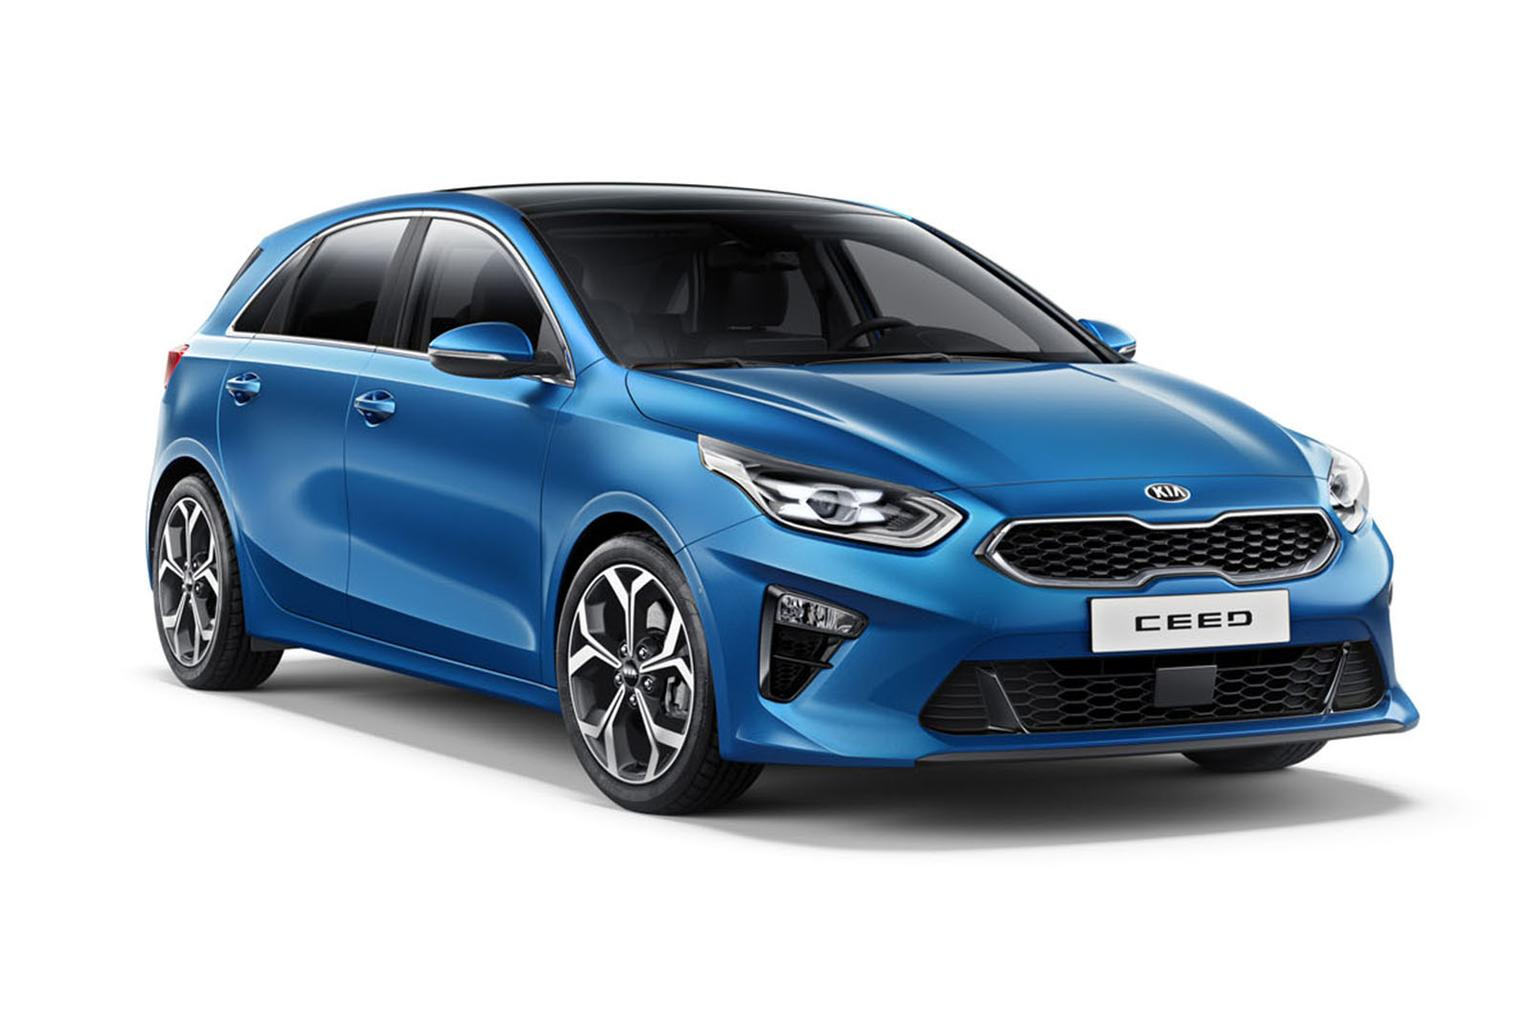 2018 Kia Ceed – price, specs and release date